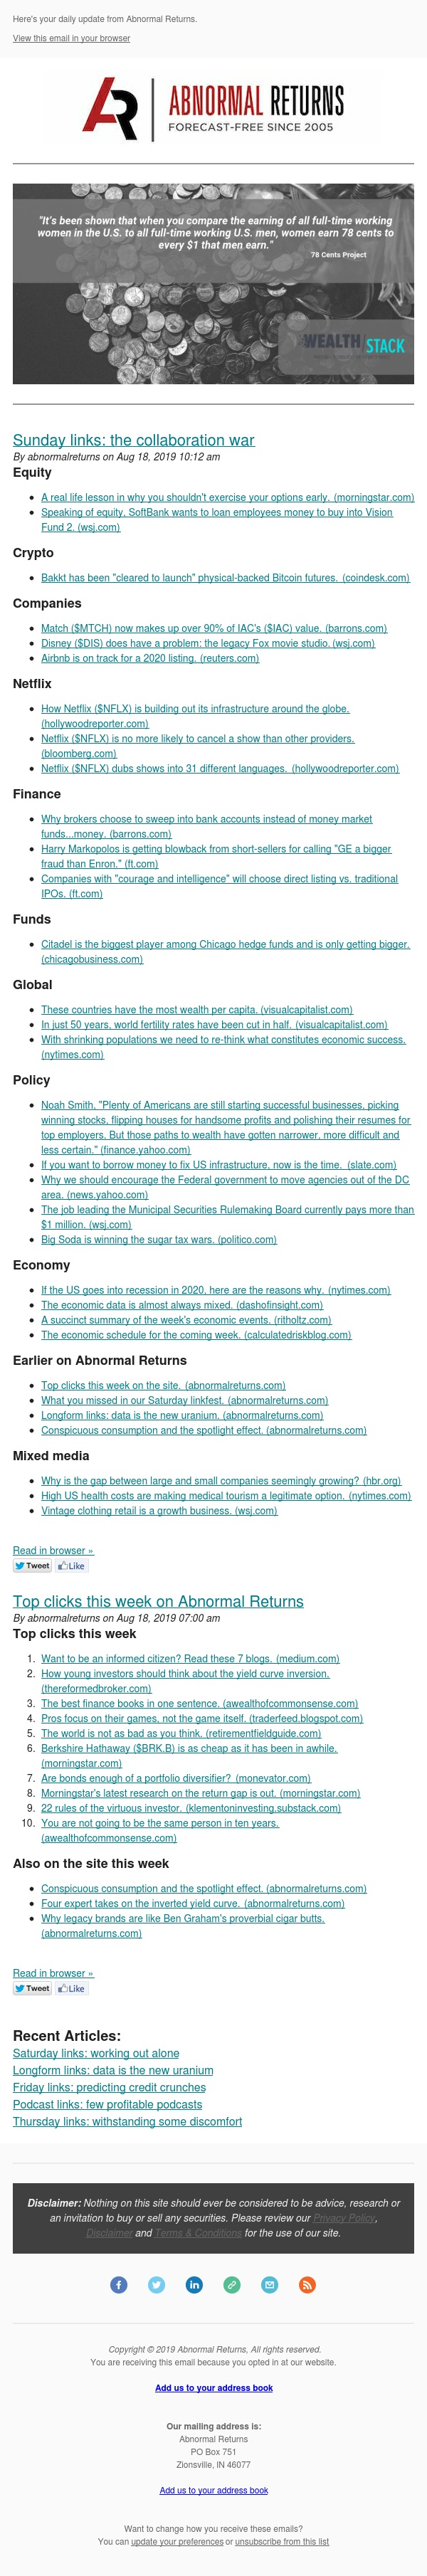 📈📉Posts from Abnormal Returns for 08/18/2019